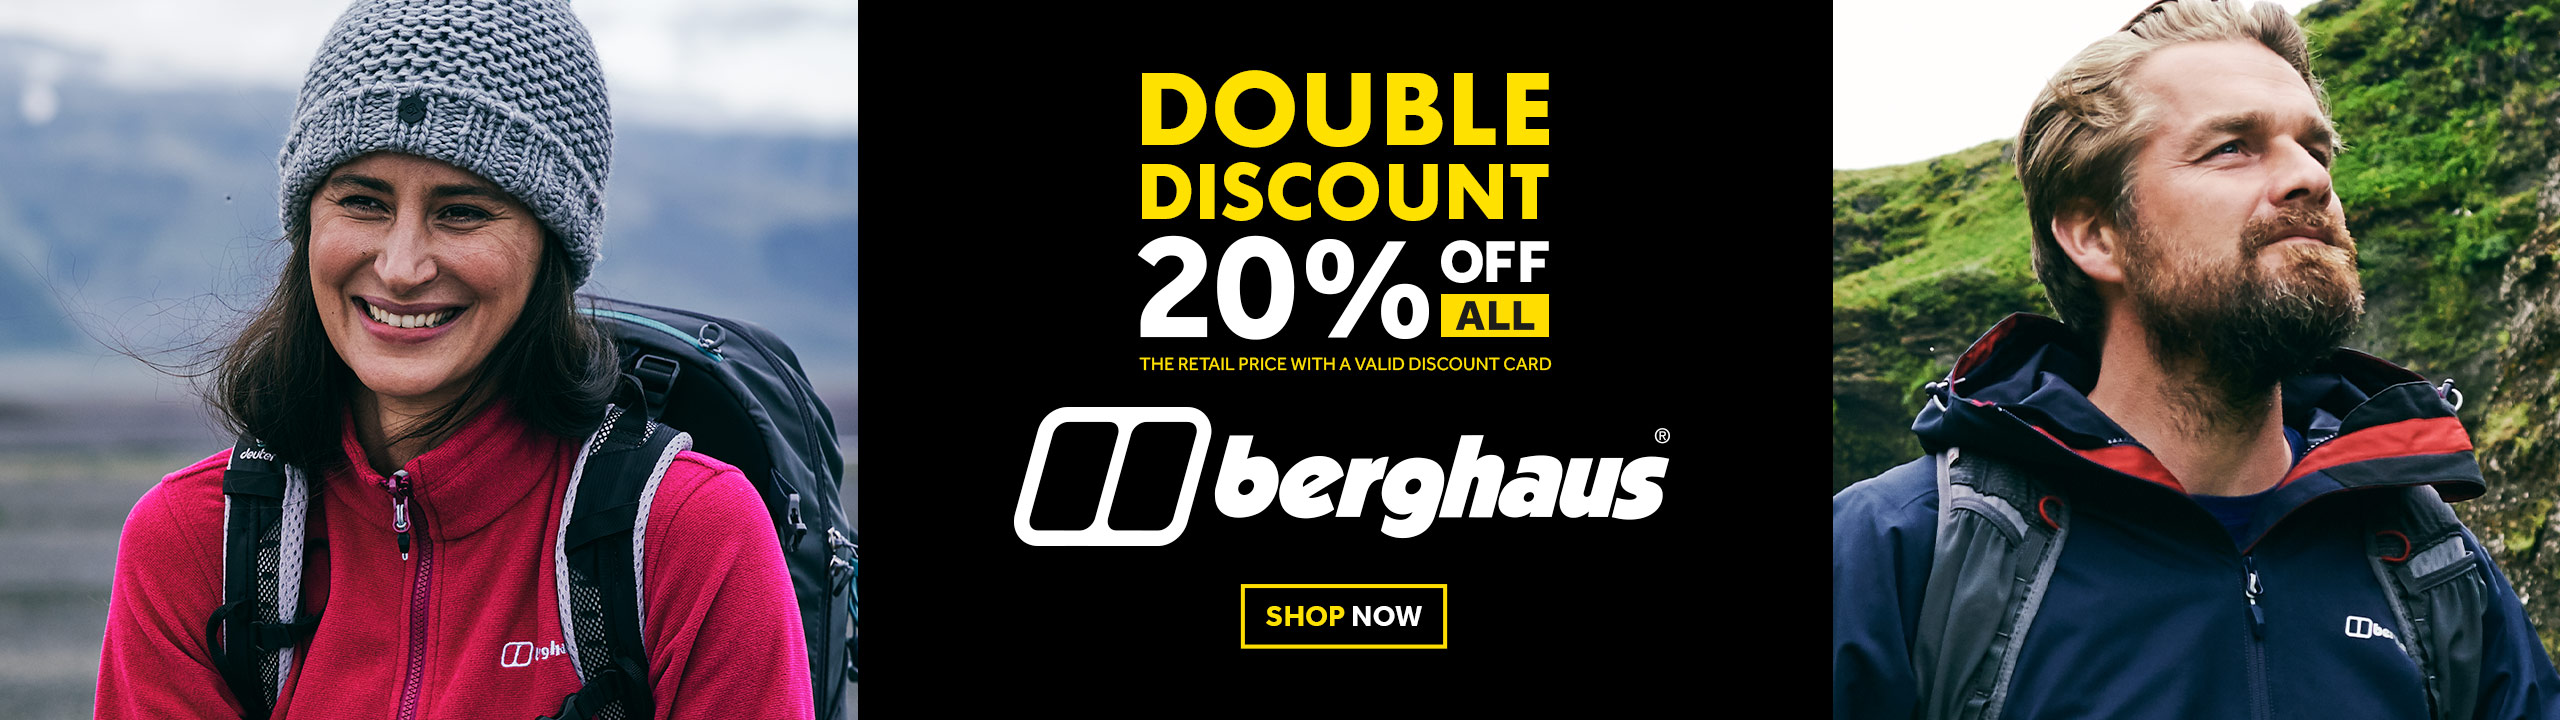 autumn shoes popular brand new arrive Berghaus Clothing, Footwear & Packs   GO Outdoors UK